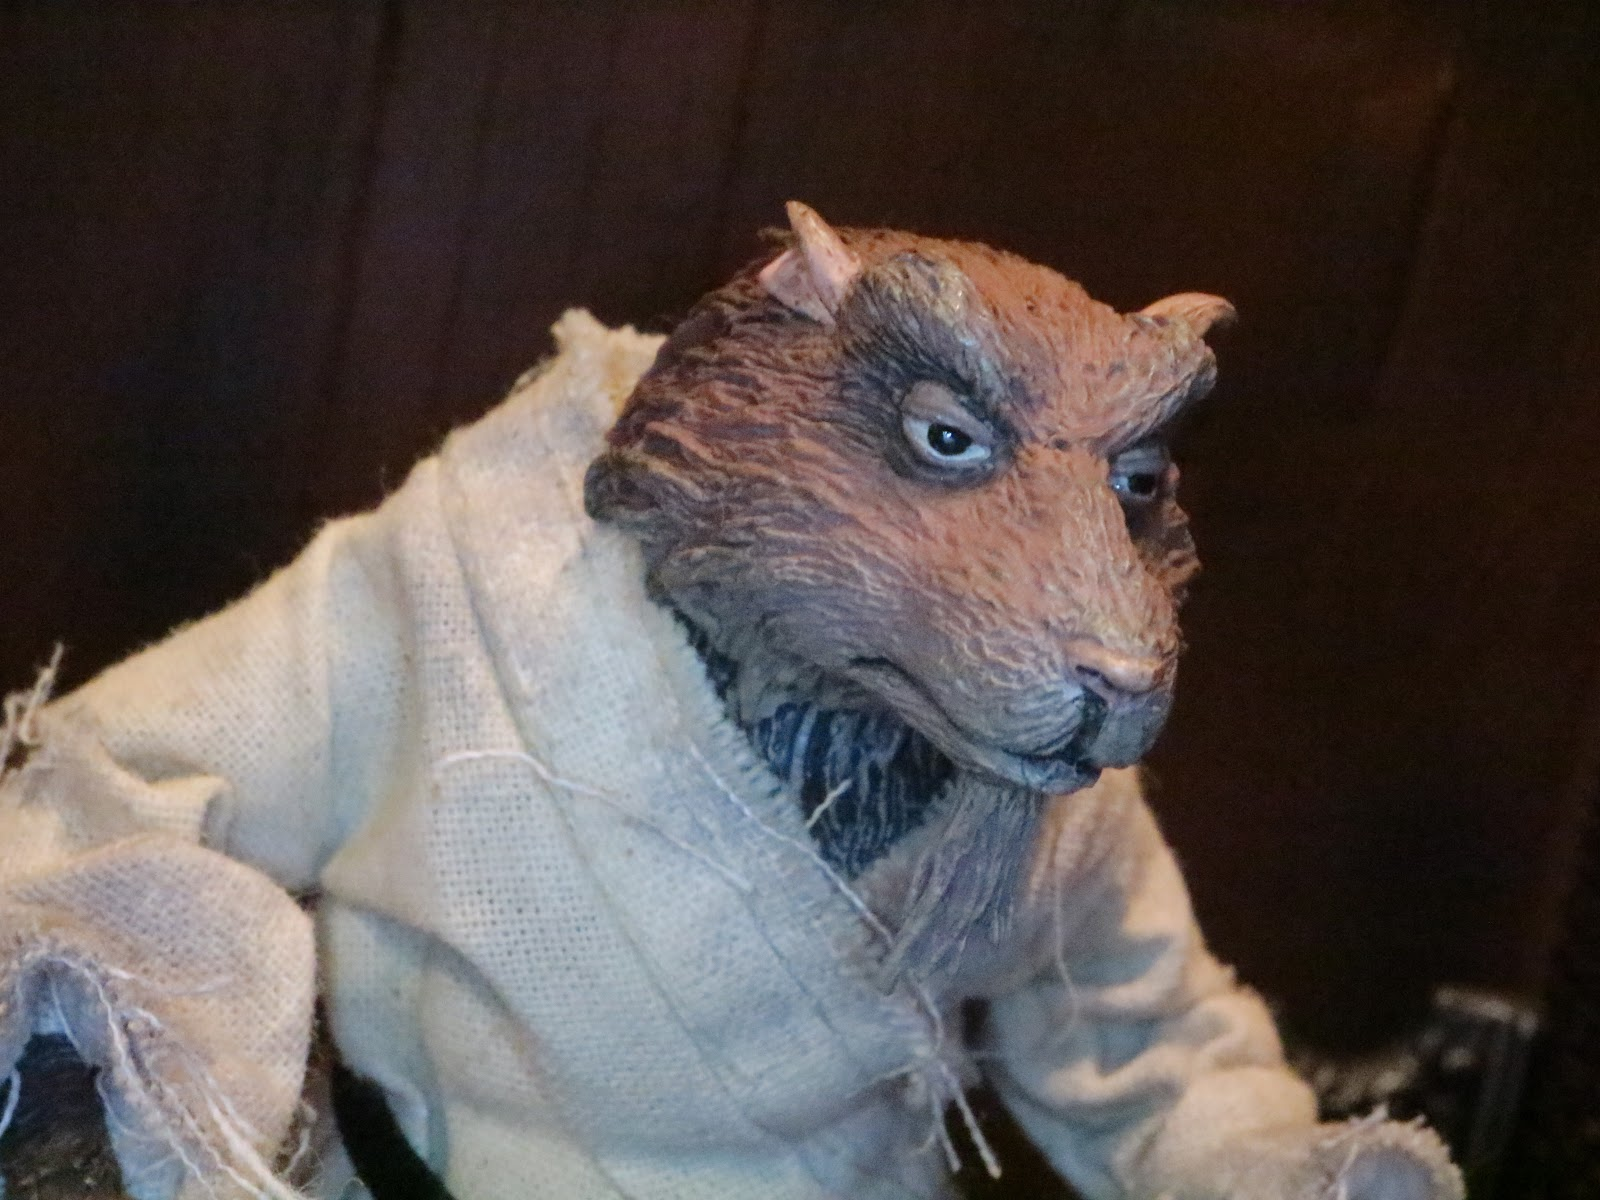 Action Figure Barbecue Action Figure Review Splinter From Teenage Mutant Ninja Turtles By Neca